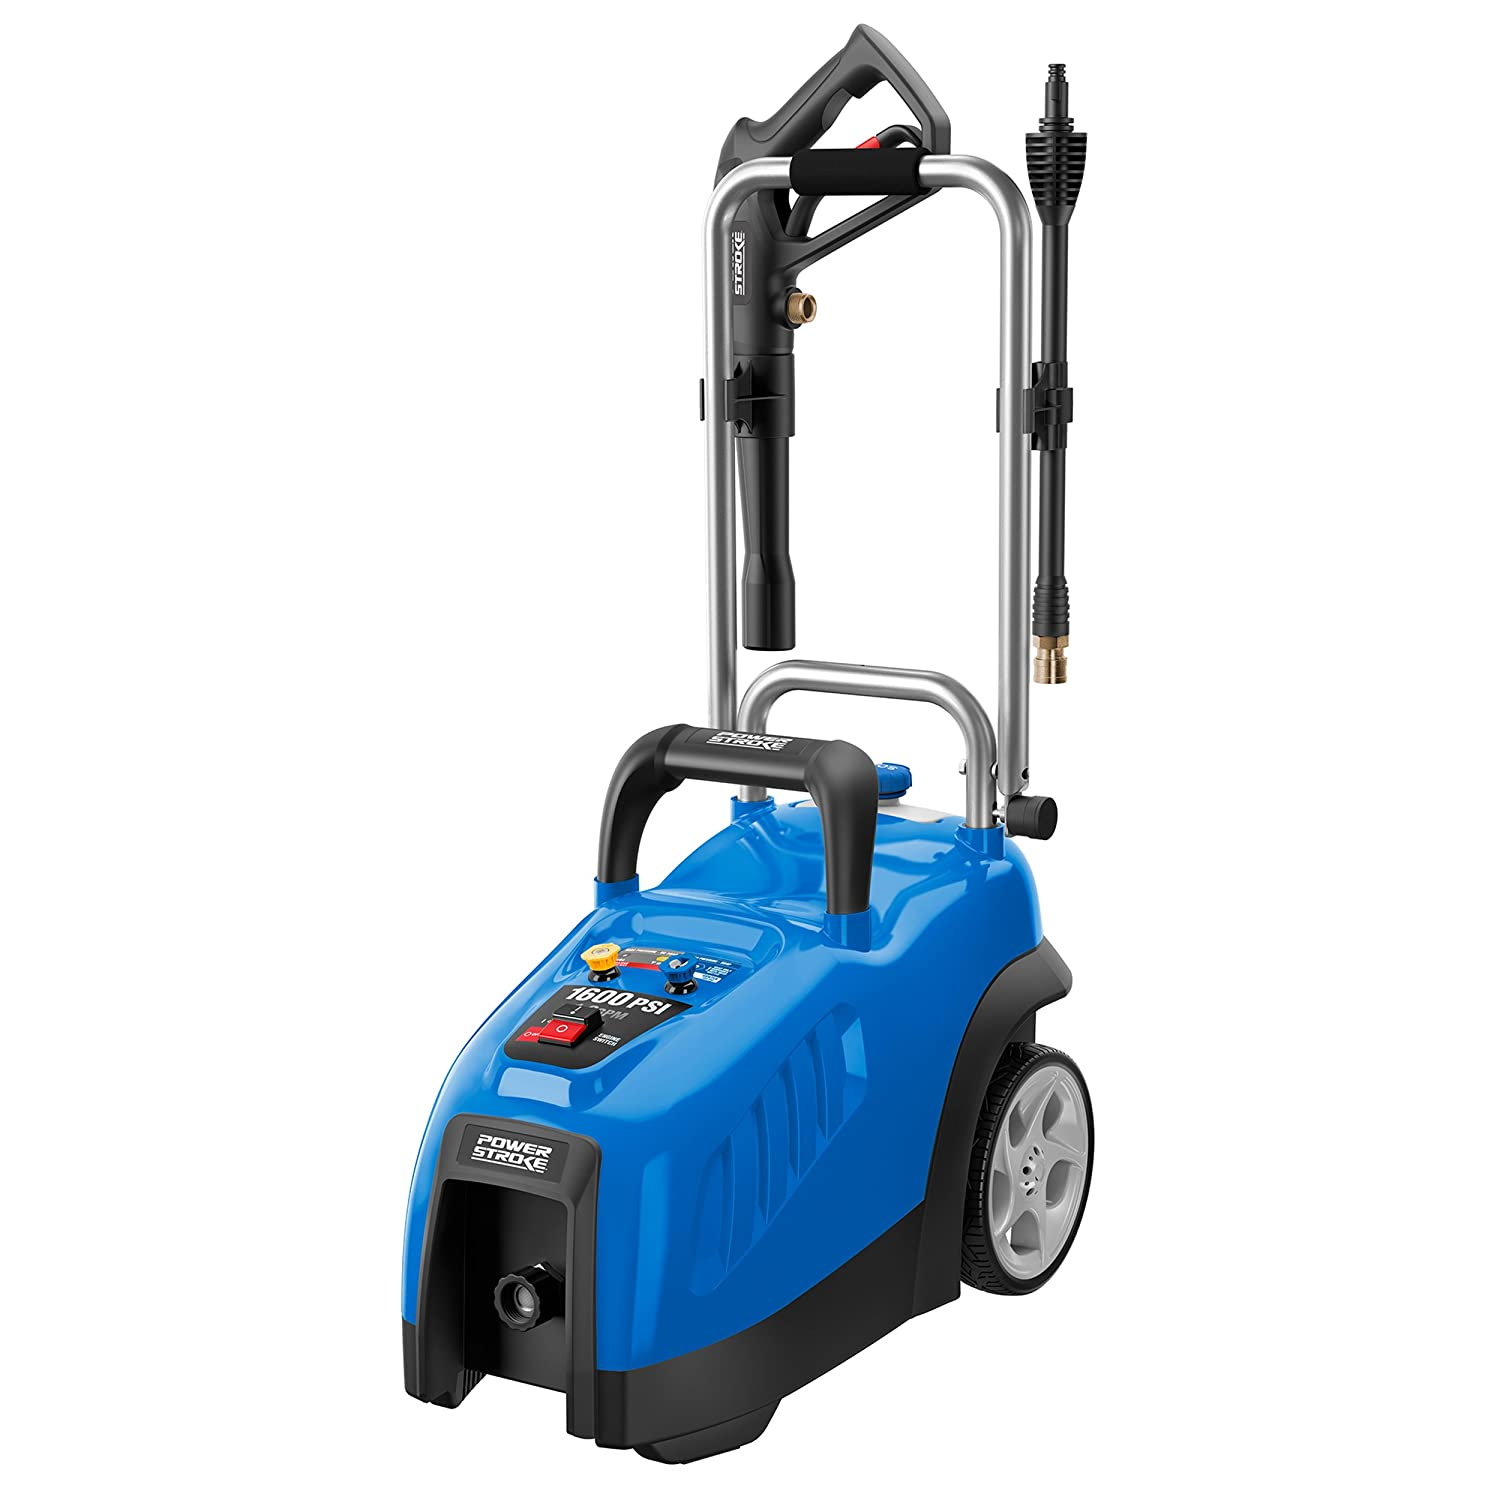 The New Powerstroke Electric Pressure Washer